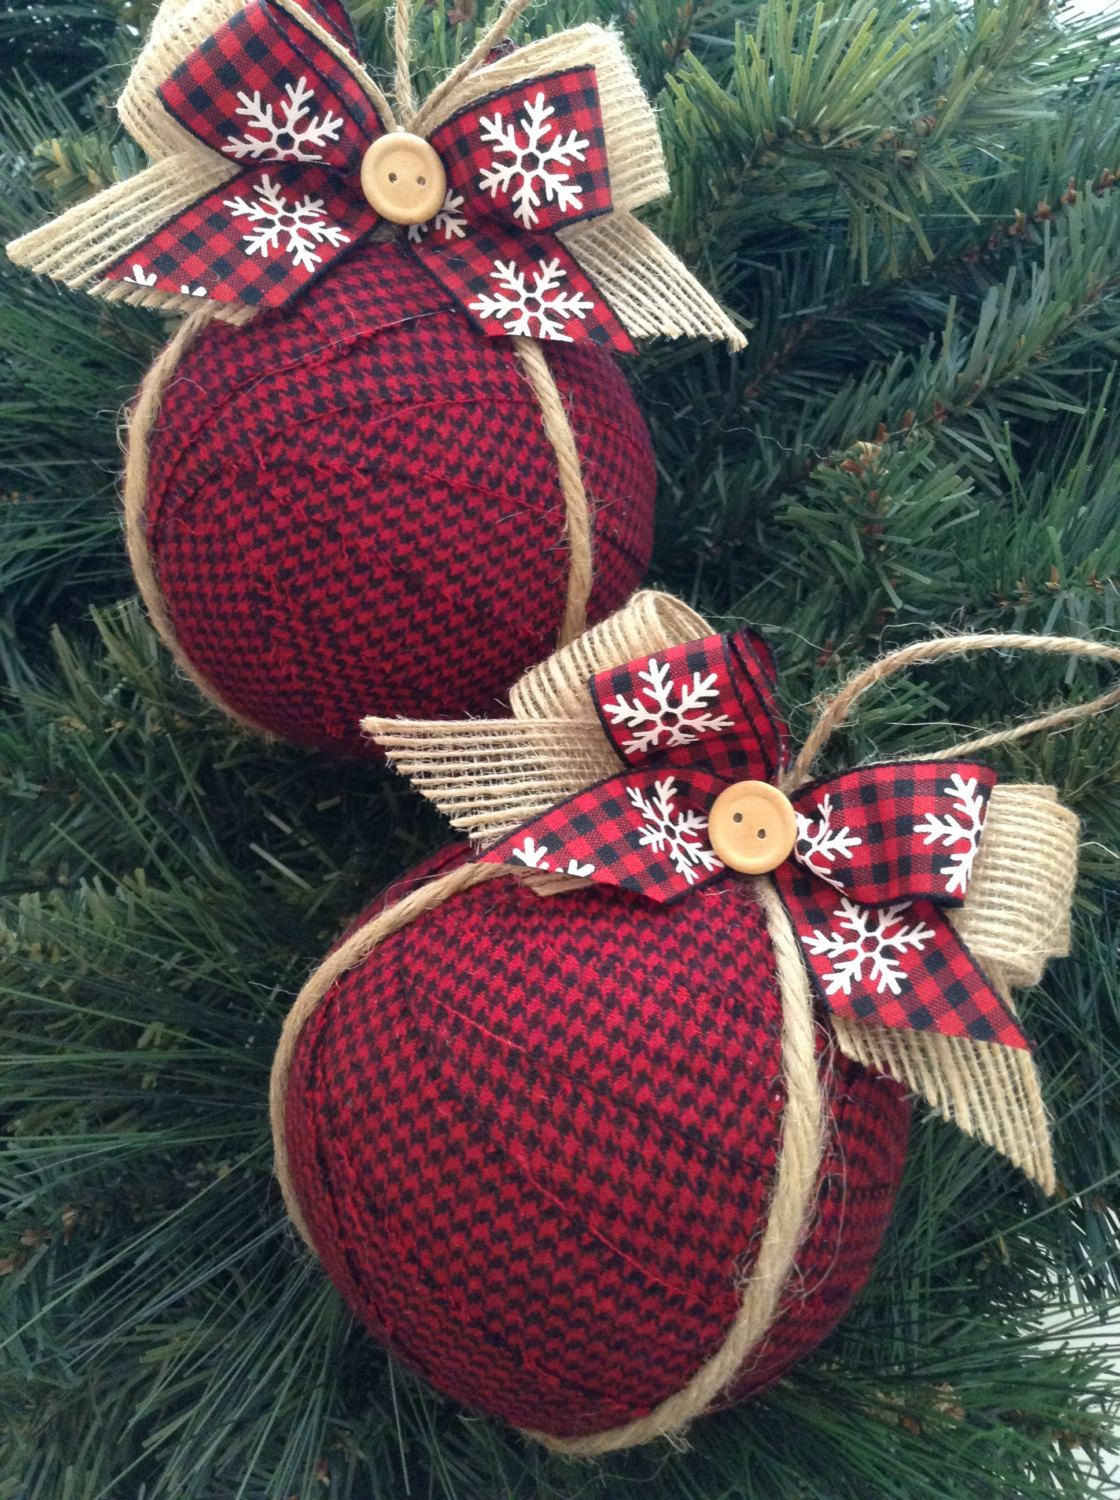 Primitive christmas ideas to make - Ornaments Christmas Fabric Ornaments Xmas Tree Ornaments Red Black Burlap Xmas